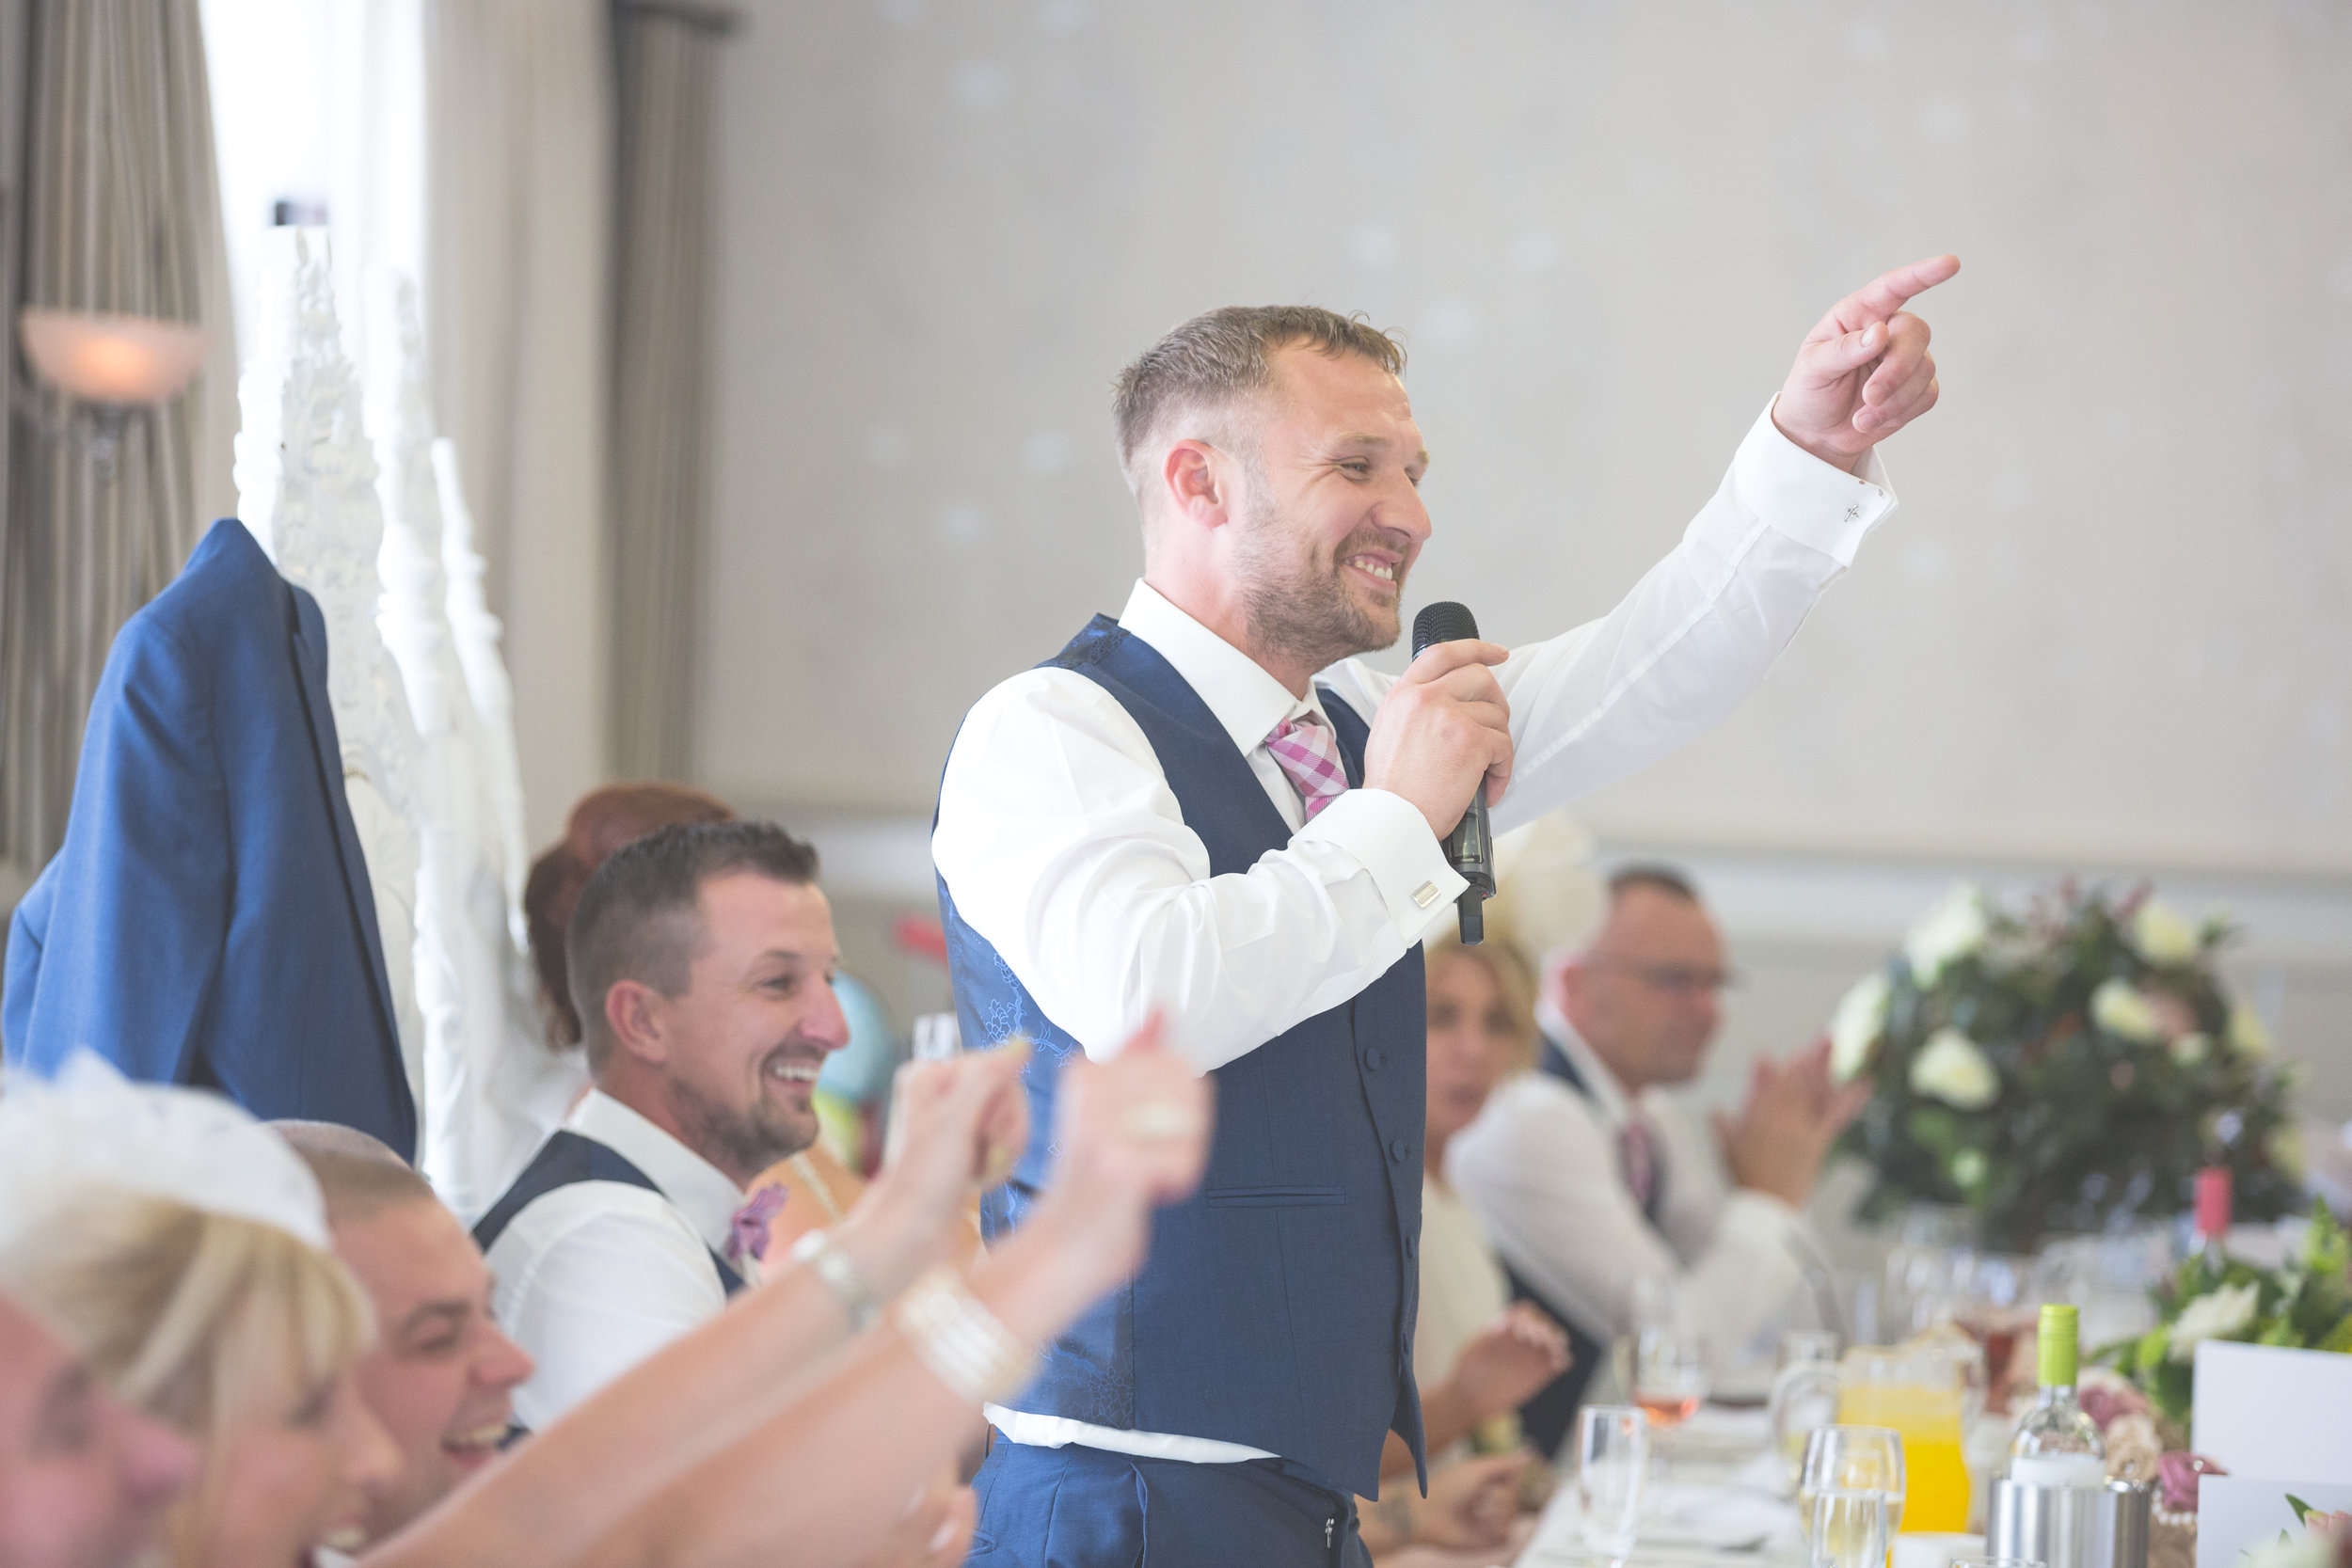 Antoinette & Stephen - Speeches | Brian McEwan Photography | Wedding Photographer Northern Ireland 90.jpg